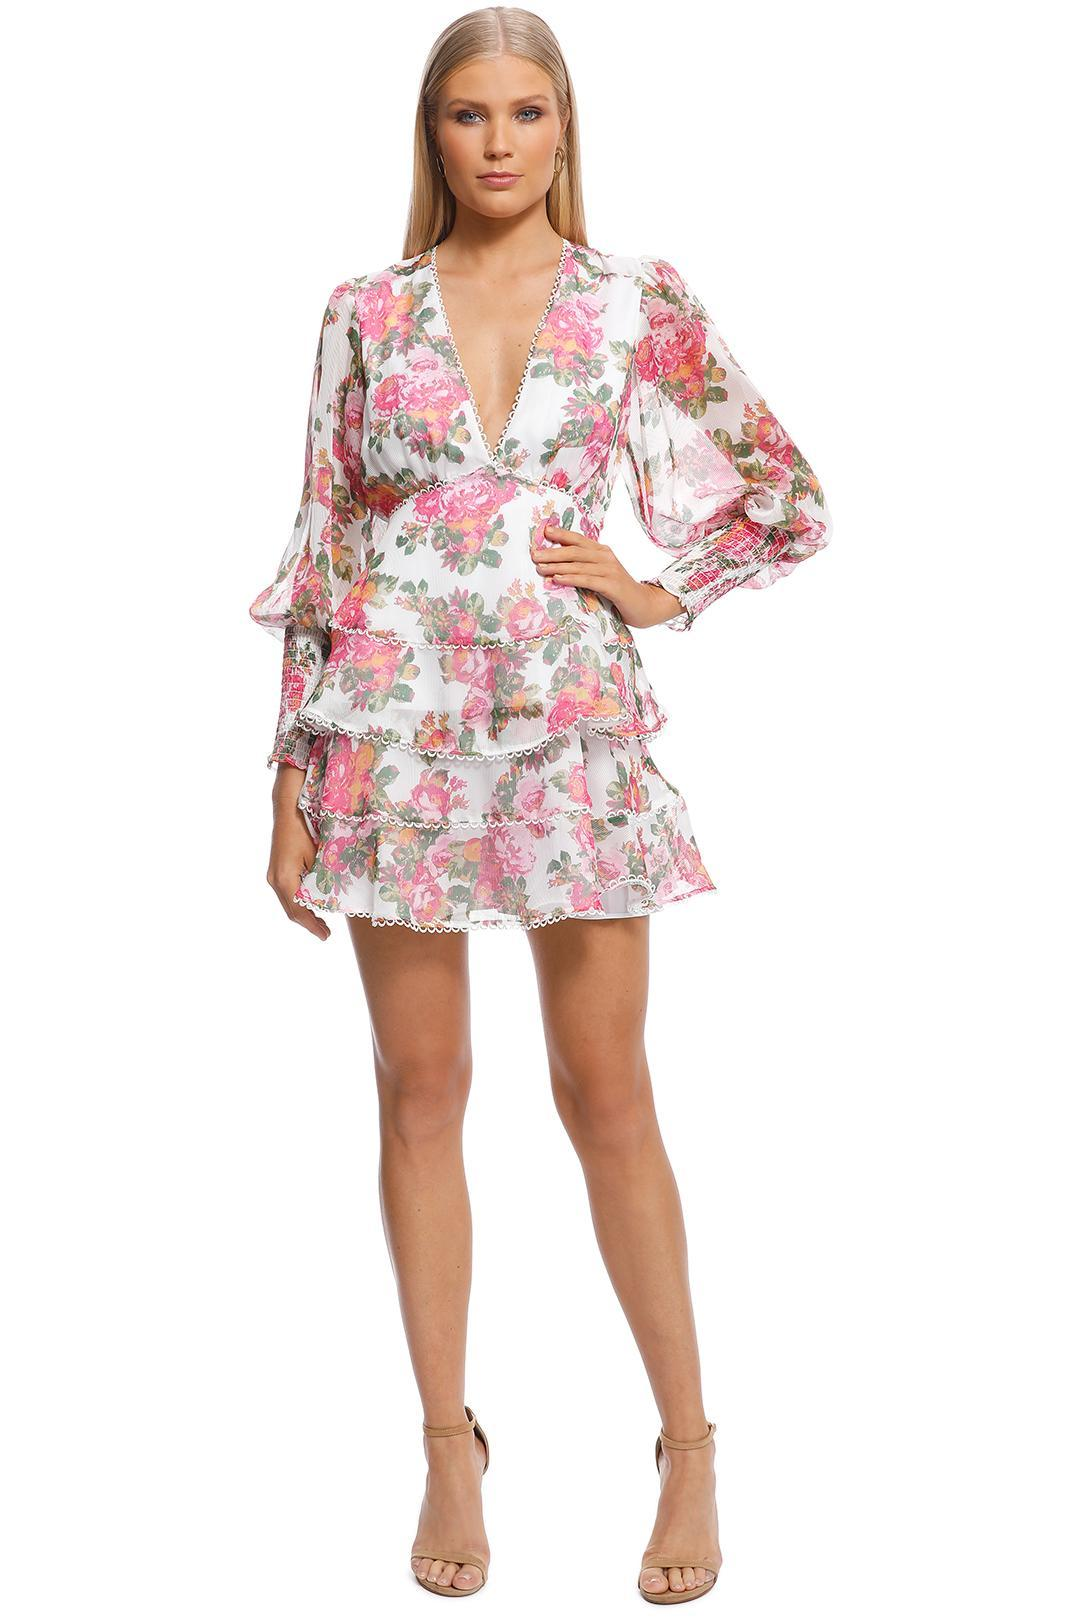 Keepsake - Oblivion LS Mini Dress - Ivory Floral